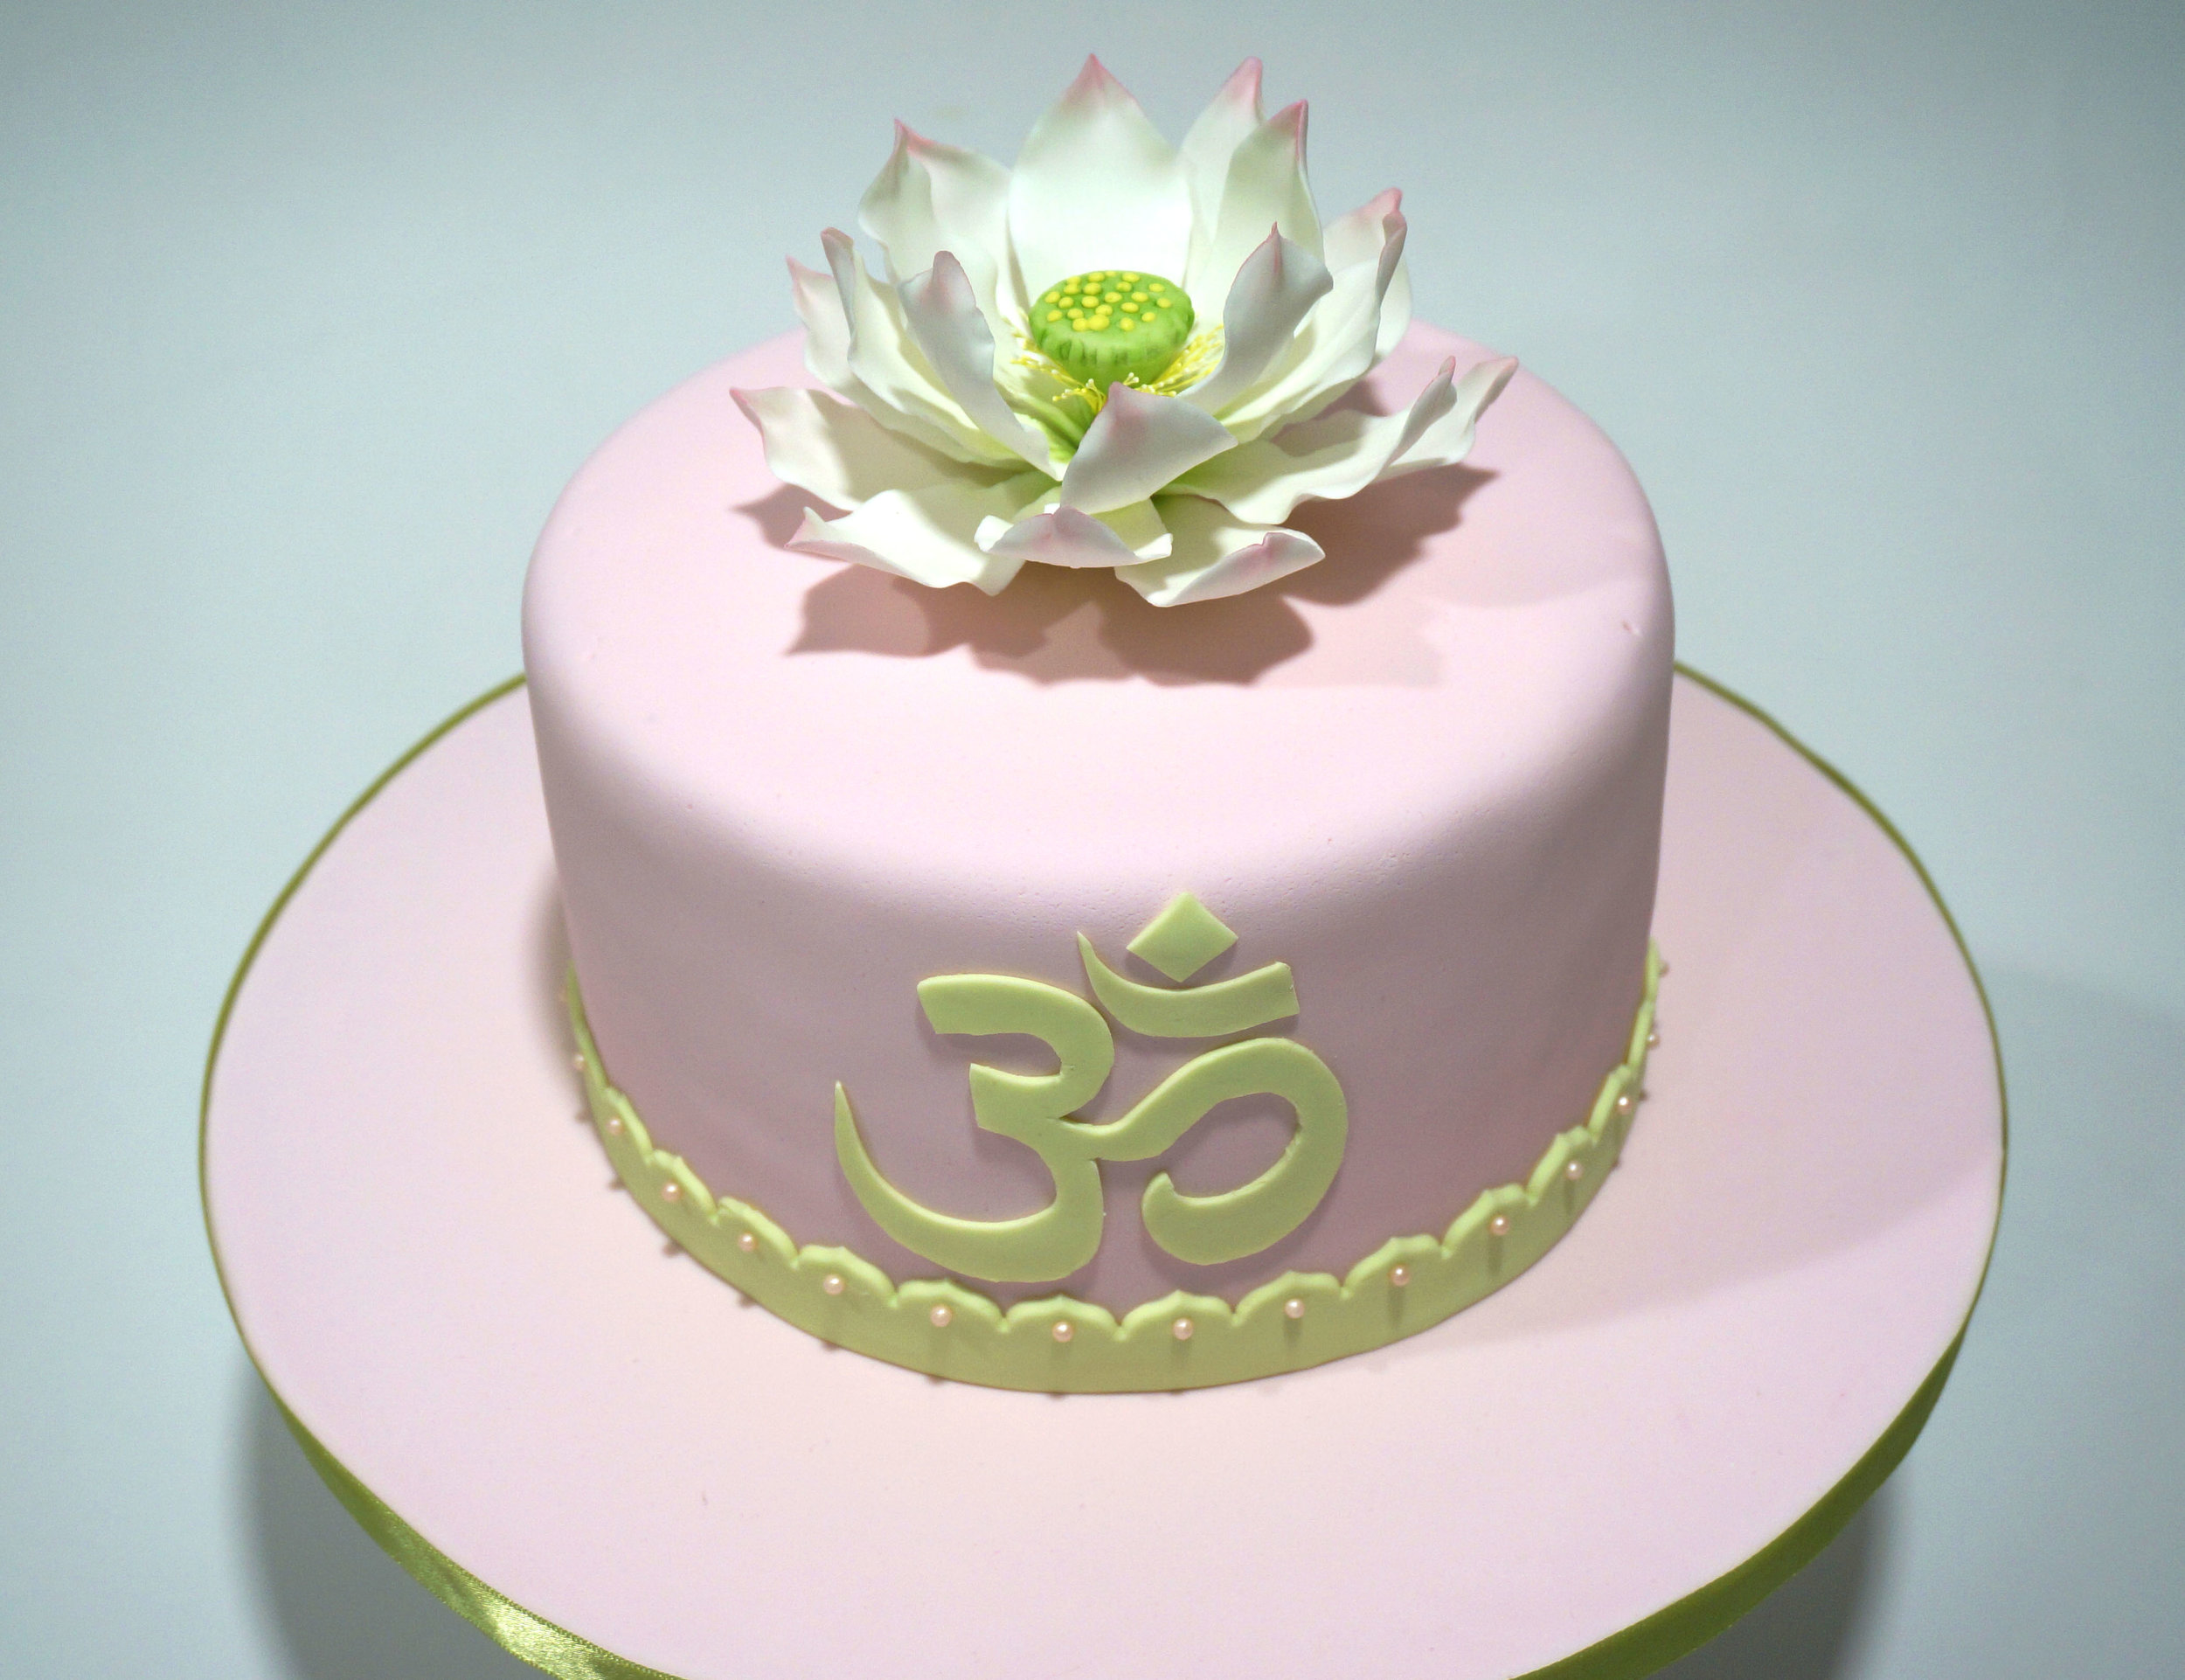 A Buddhist birthday